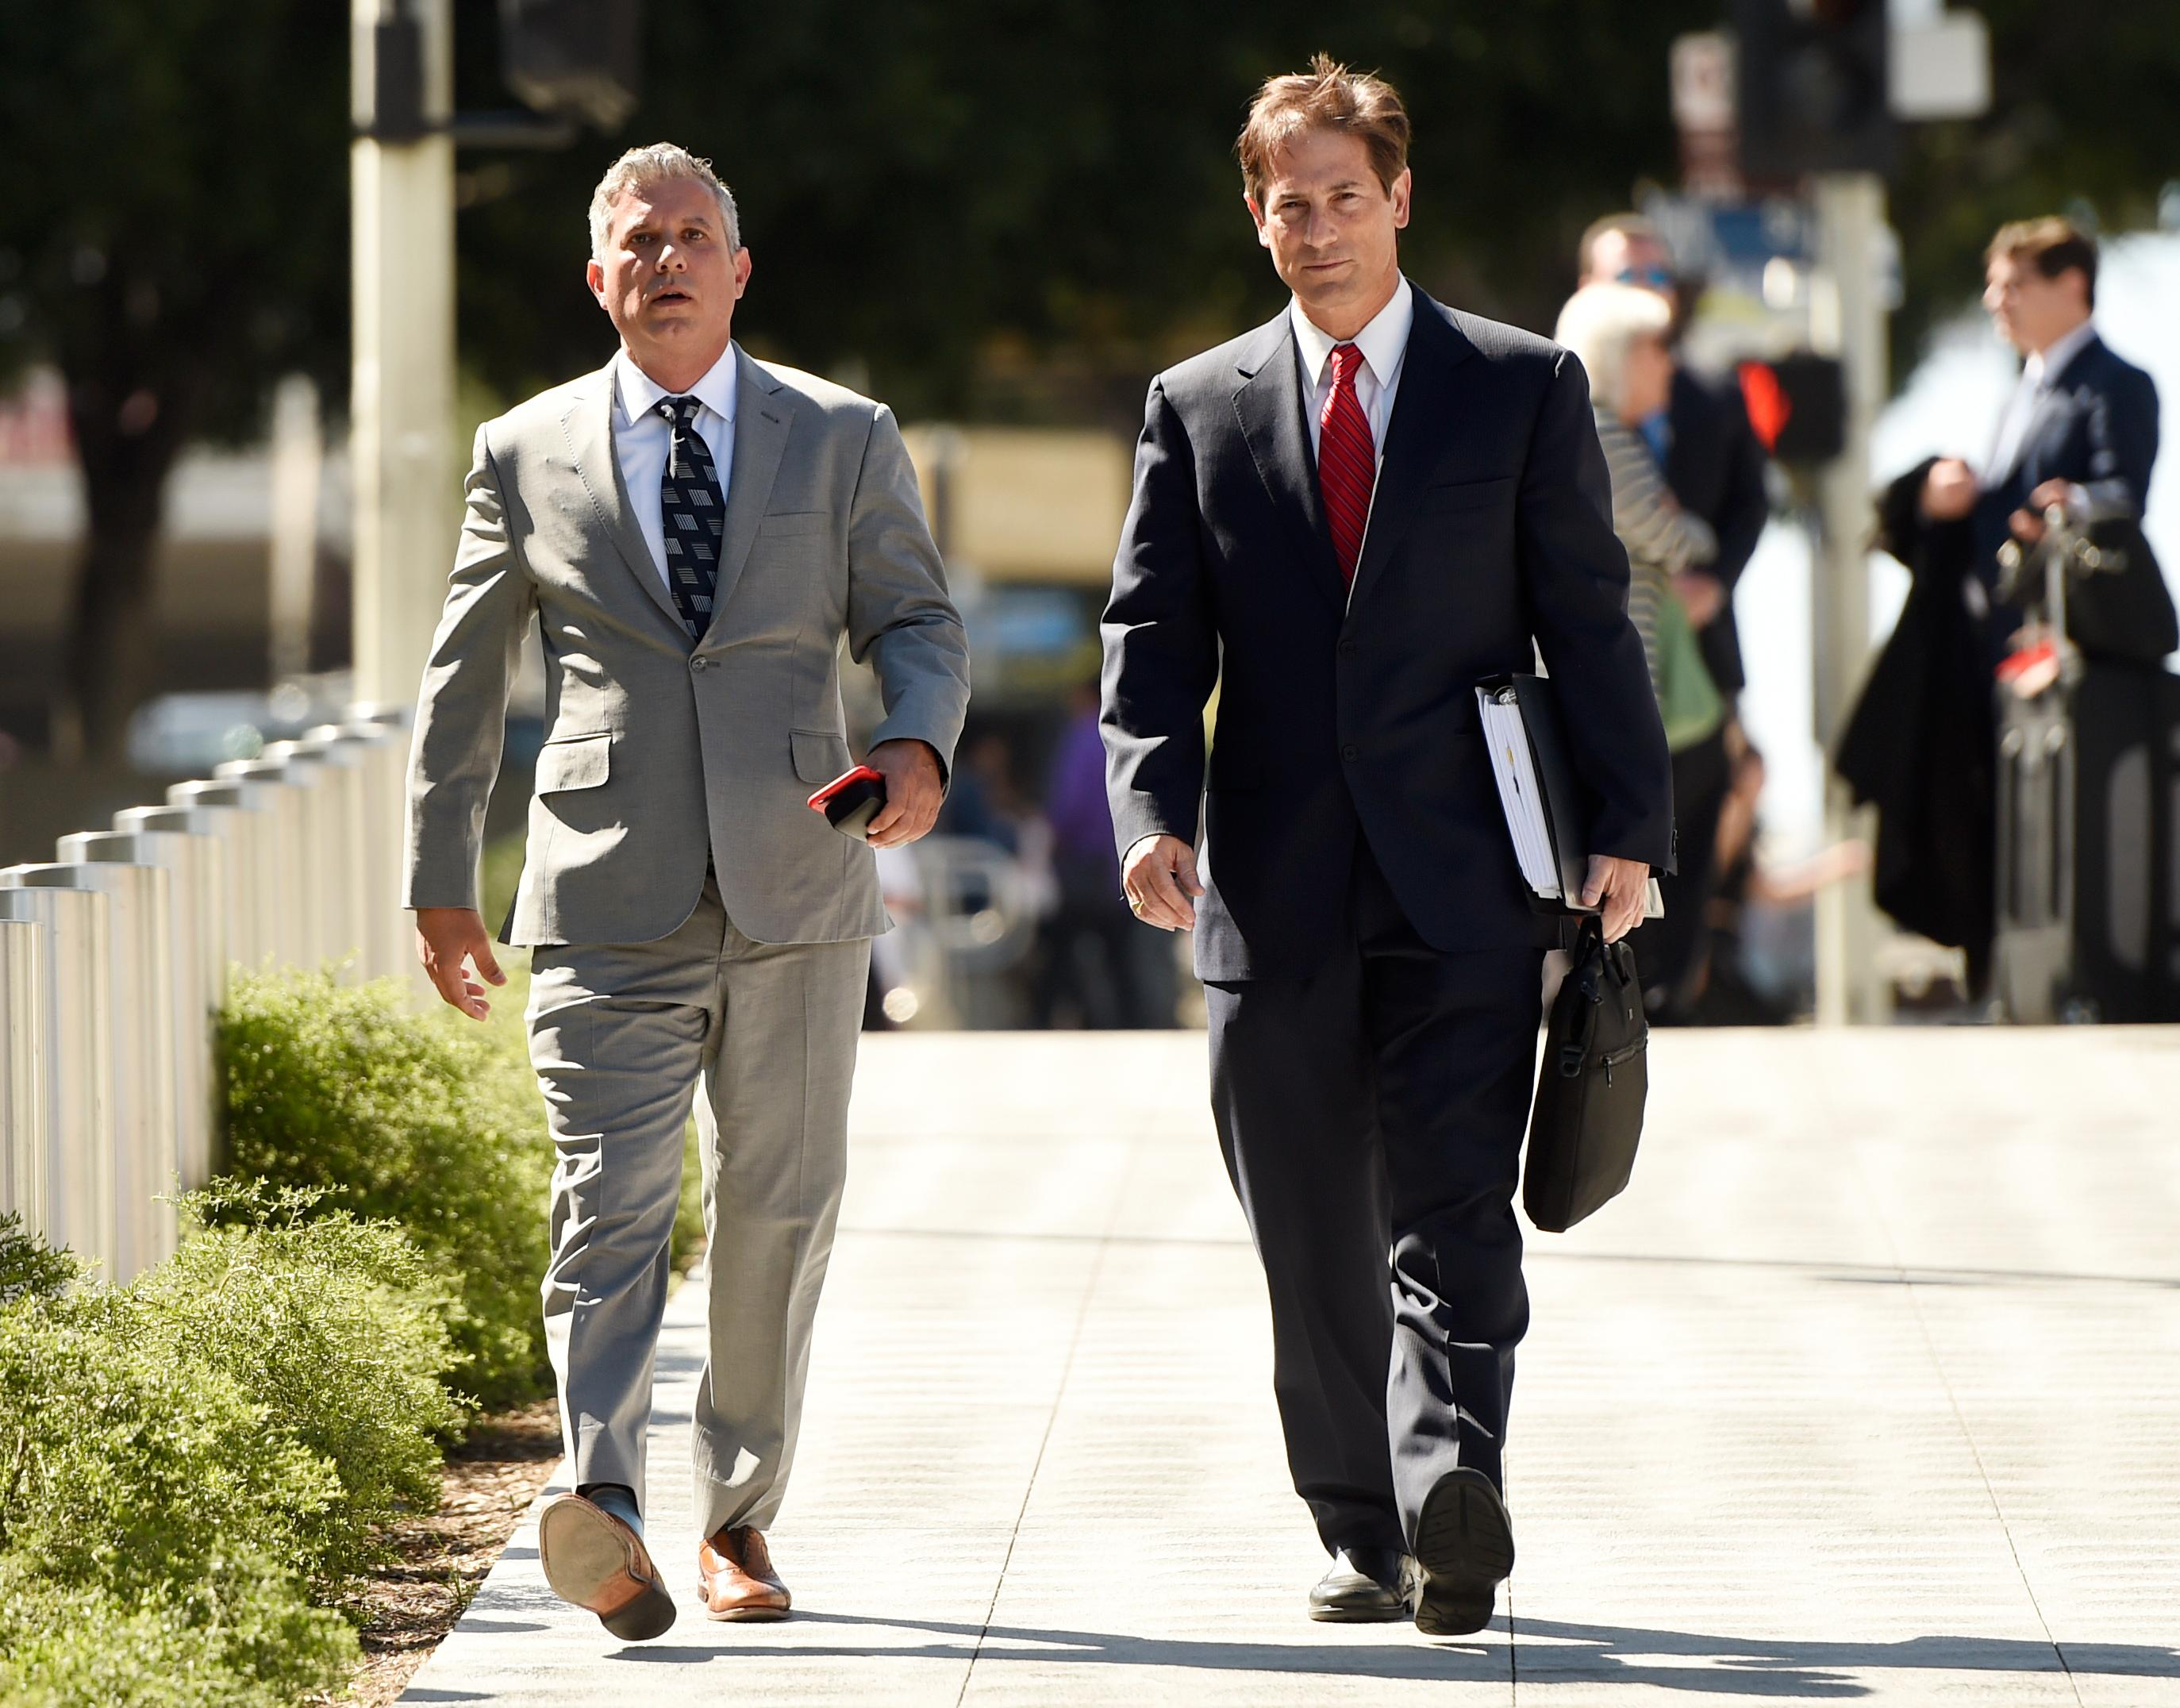 Jonathan Todd Schwartz, left, former business manager for singer Alanis Morissette, arrives with his attorney Nathan Hoffman at U.S. federal court for the sentencing in his embezzlement case, Wednesday, May 3, 2017, in Los Angeles. Schwartz pleaded guilty earlier tis year after admitting he embezzled more than $7 million from the singer and other celebrities. (AP Photo/Chris Pizzello)